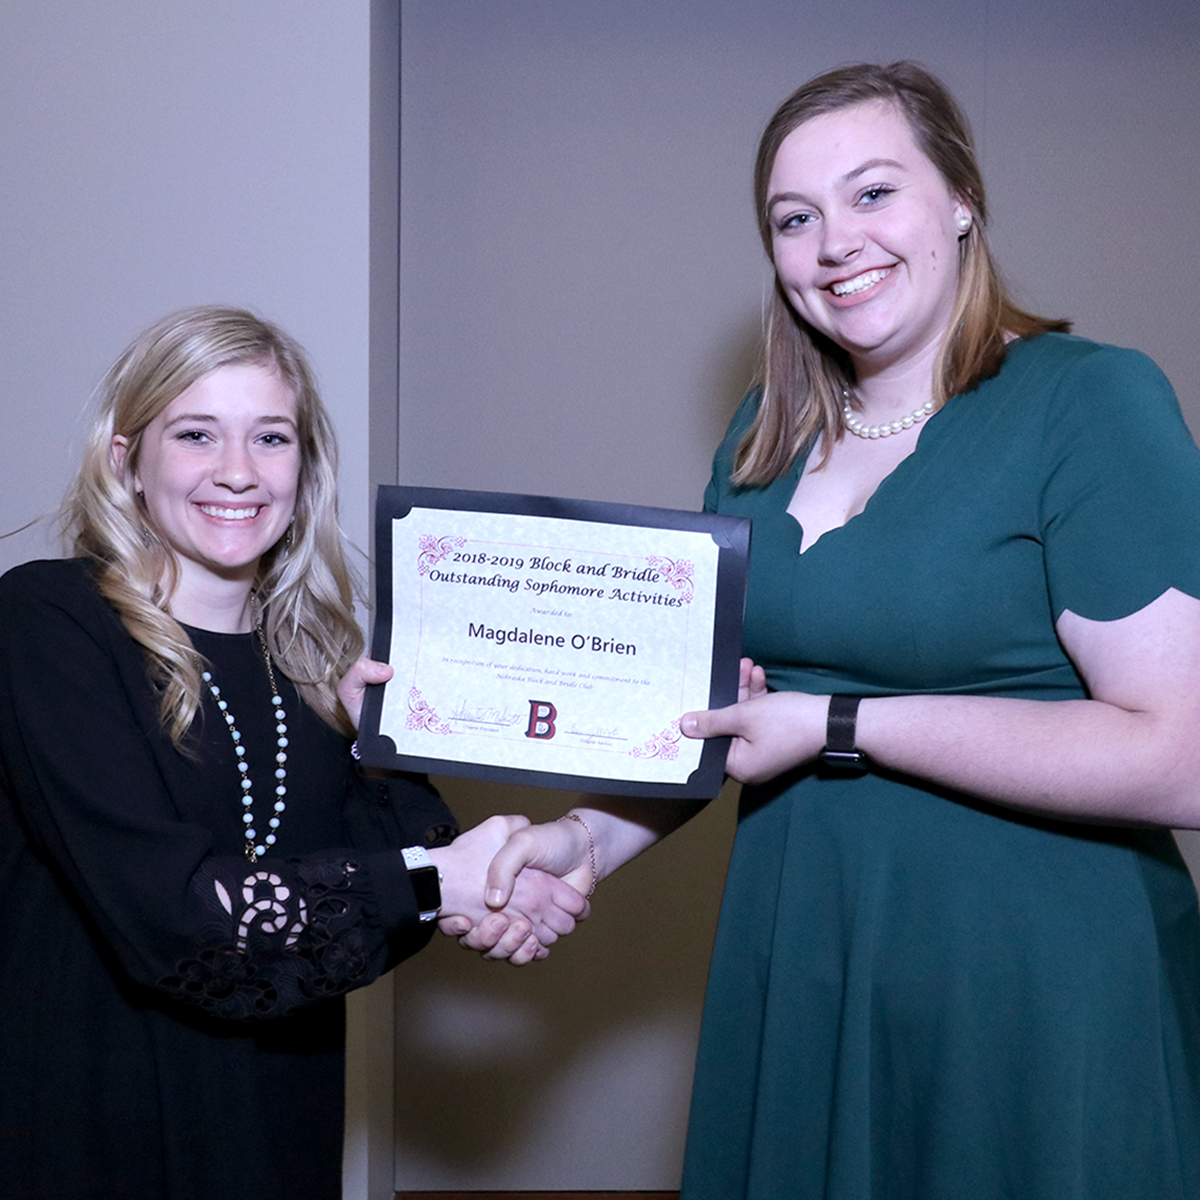 Girl presents certificate award to a woman